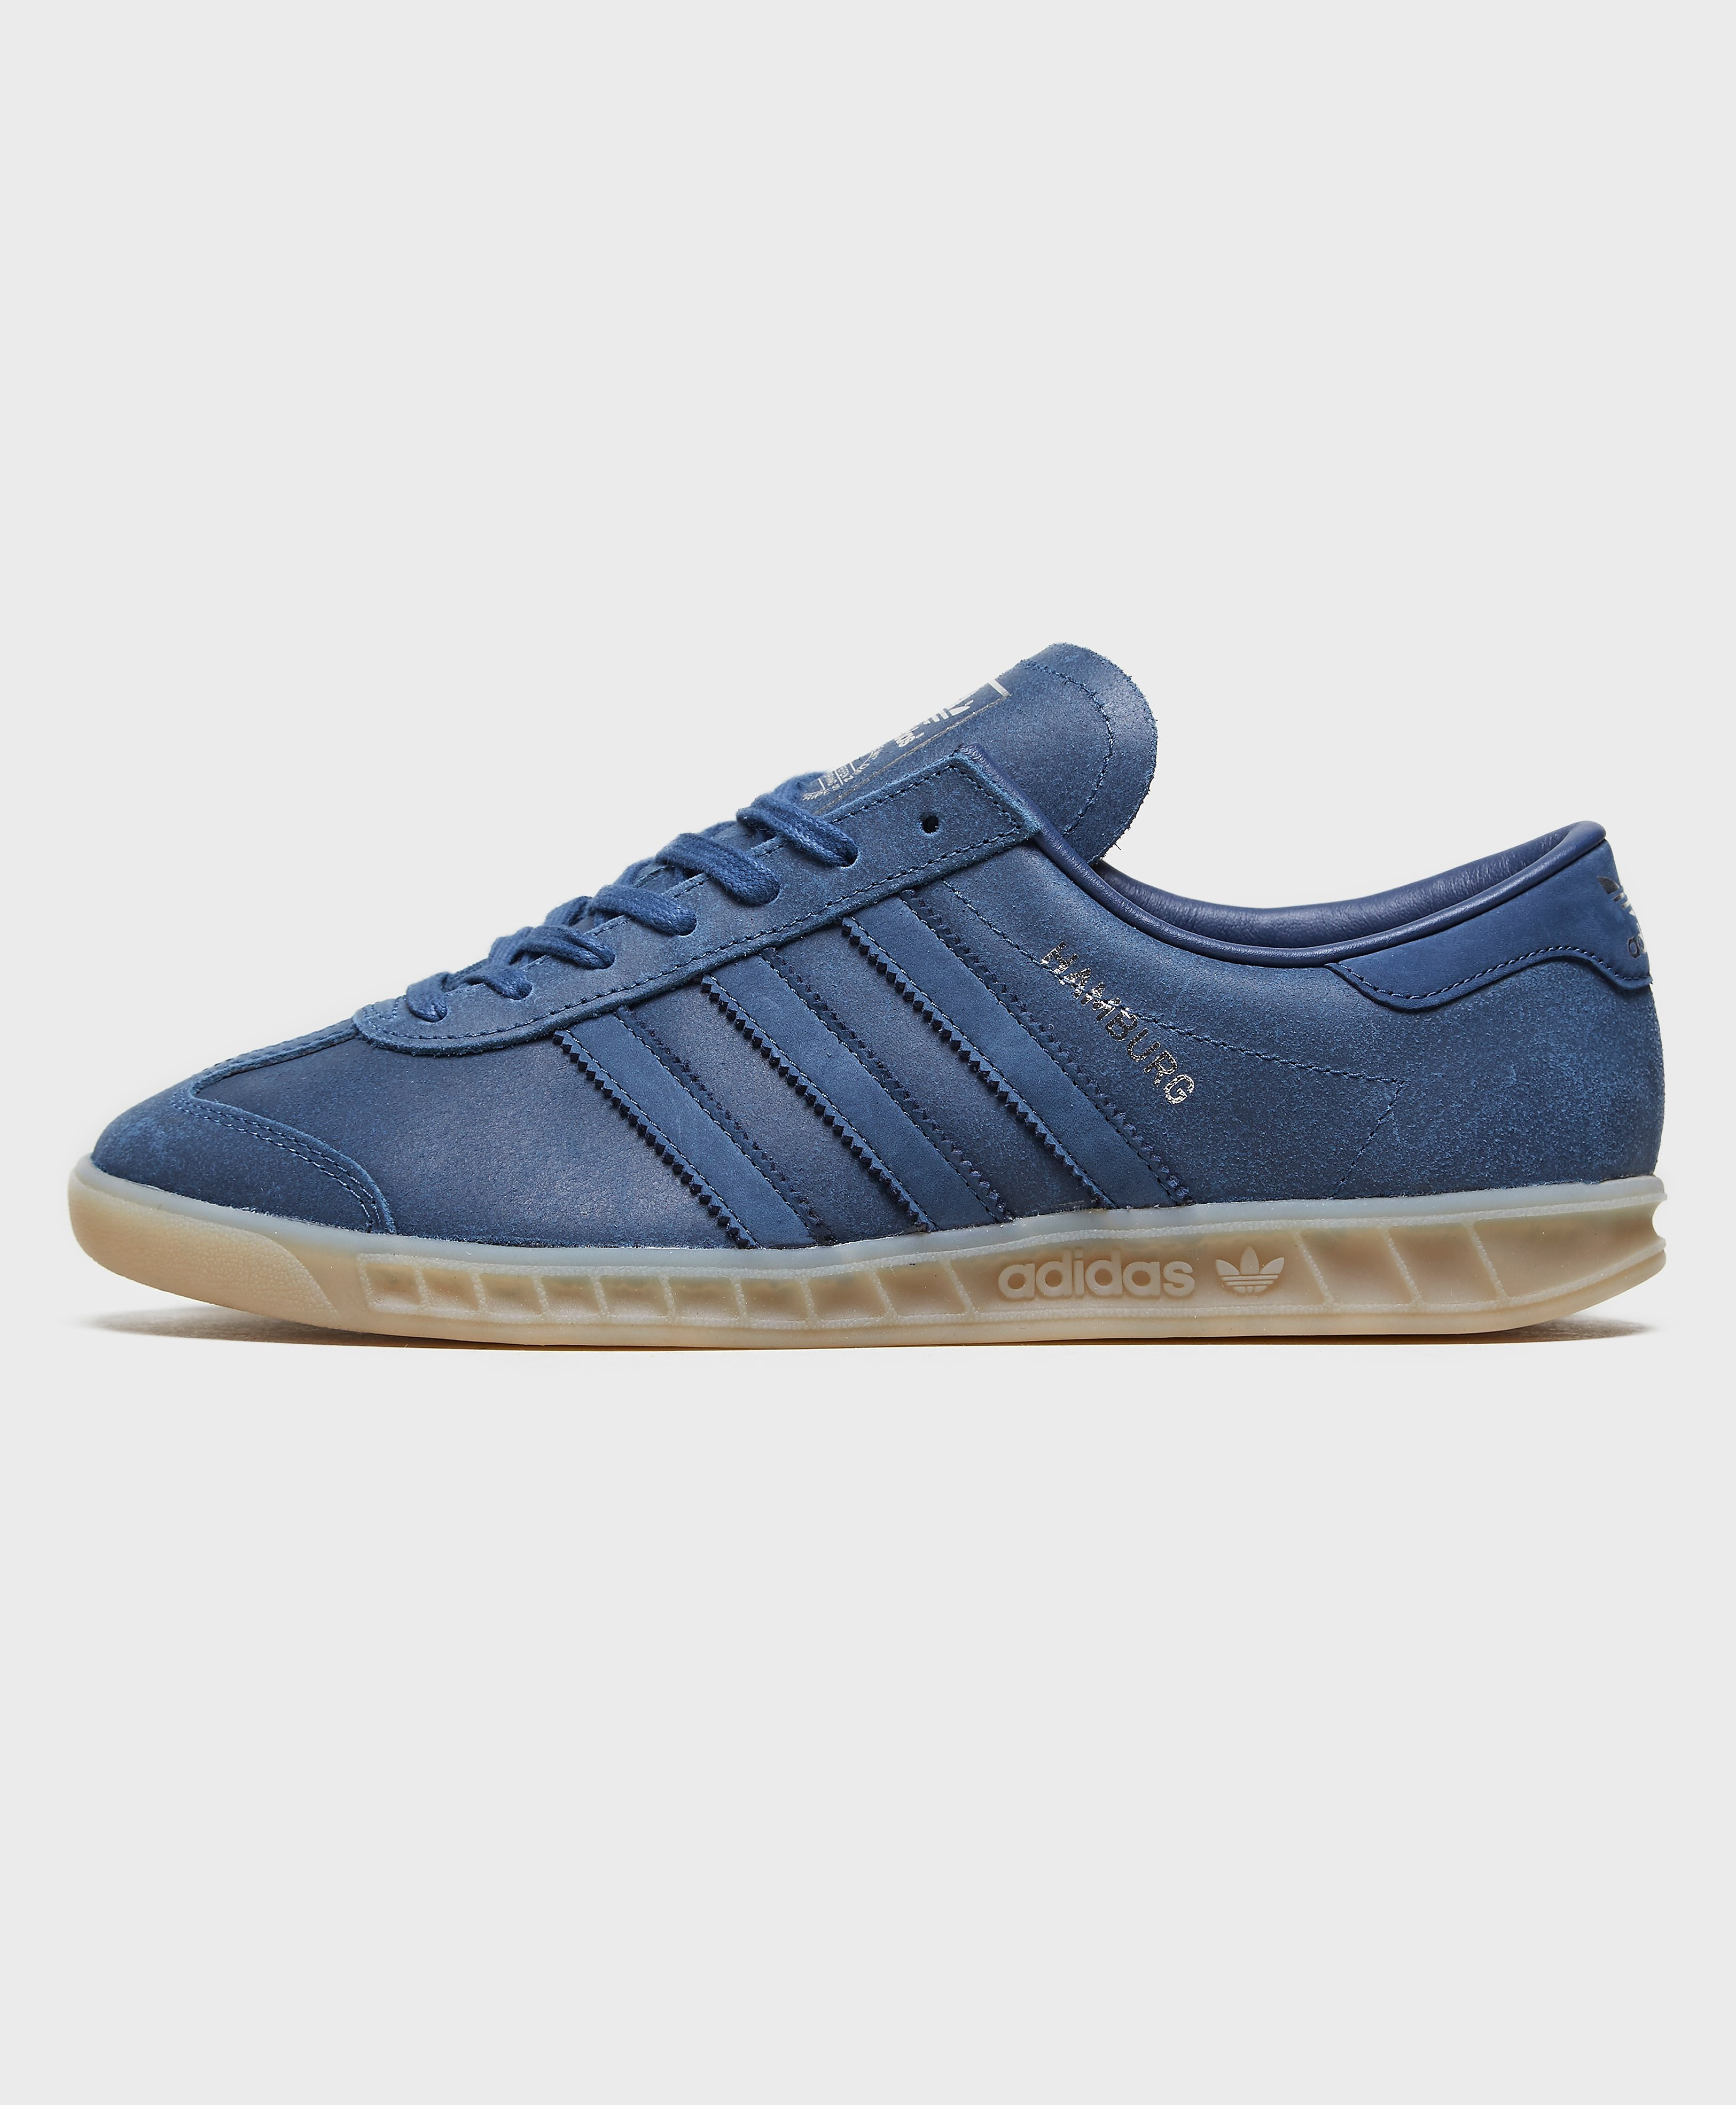 adidas Originals Hamburg  Blue Blue